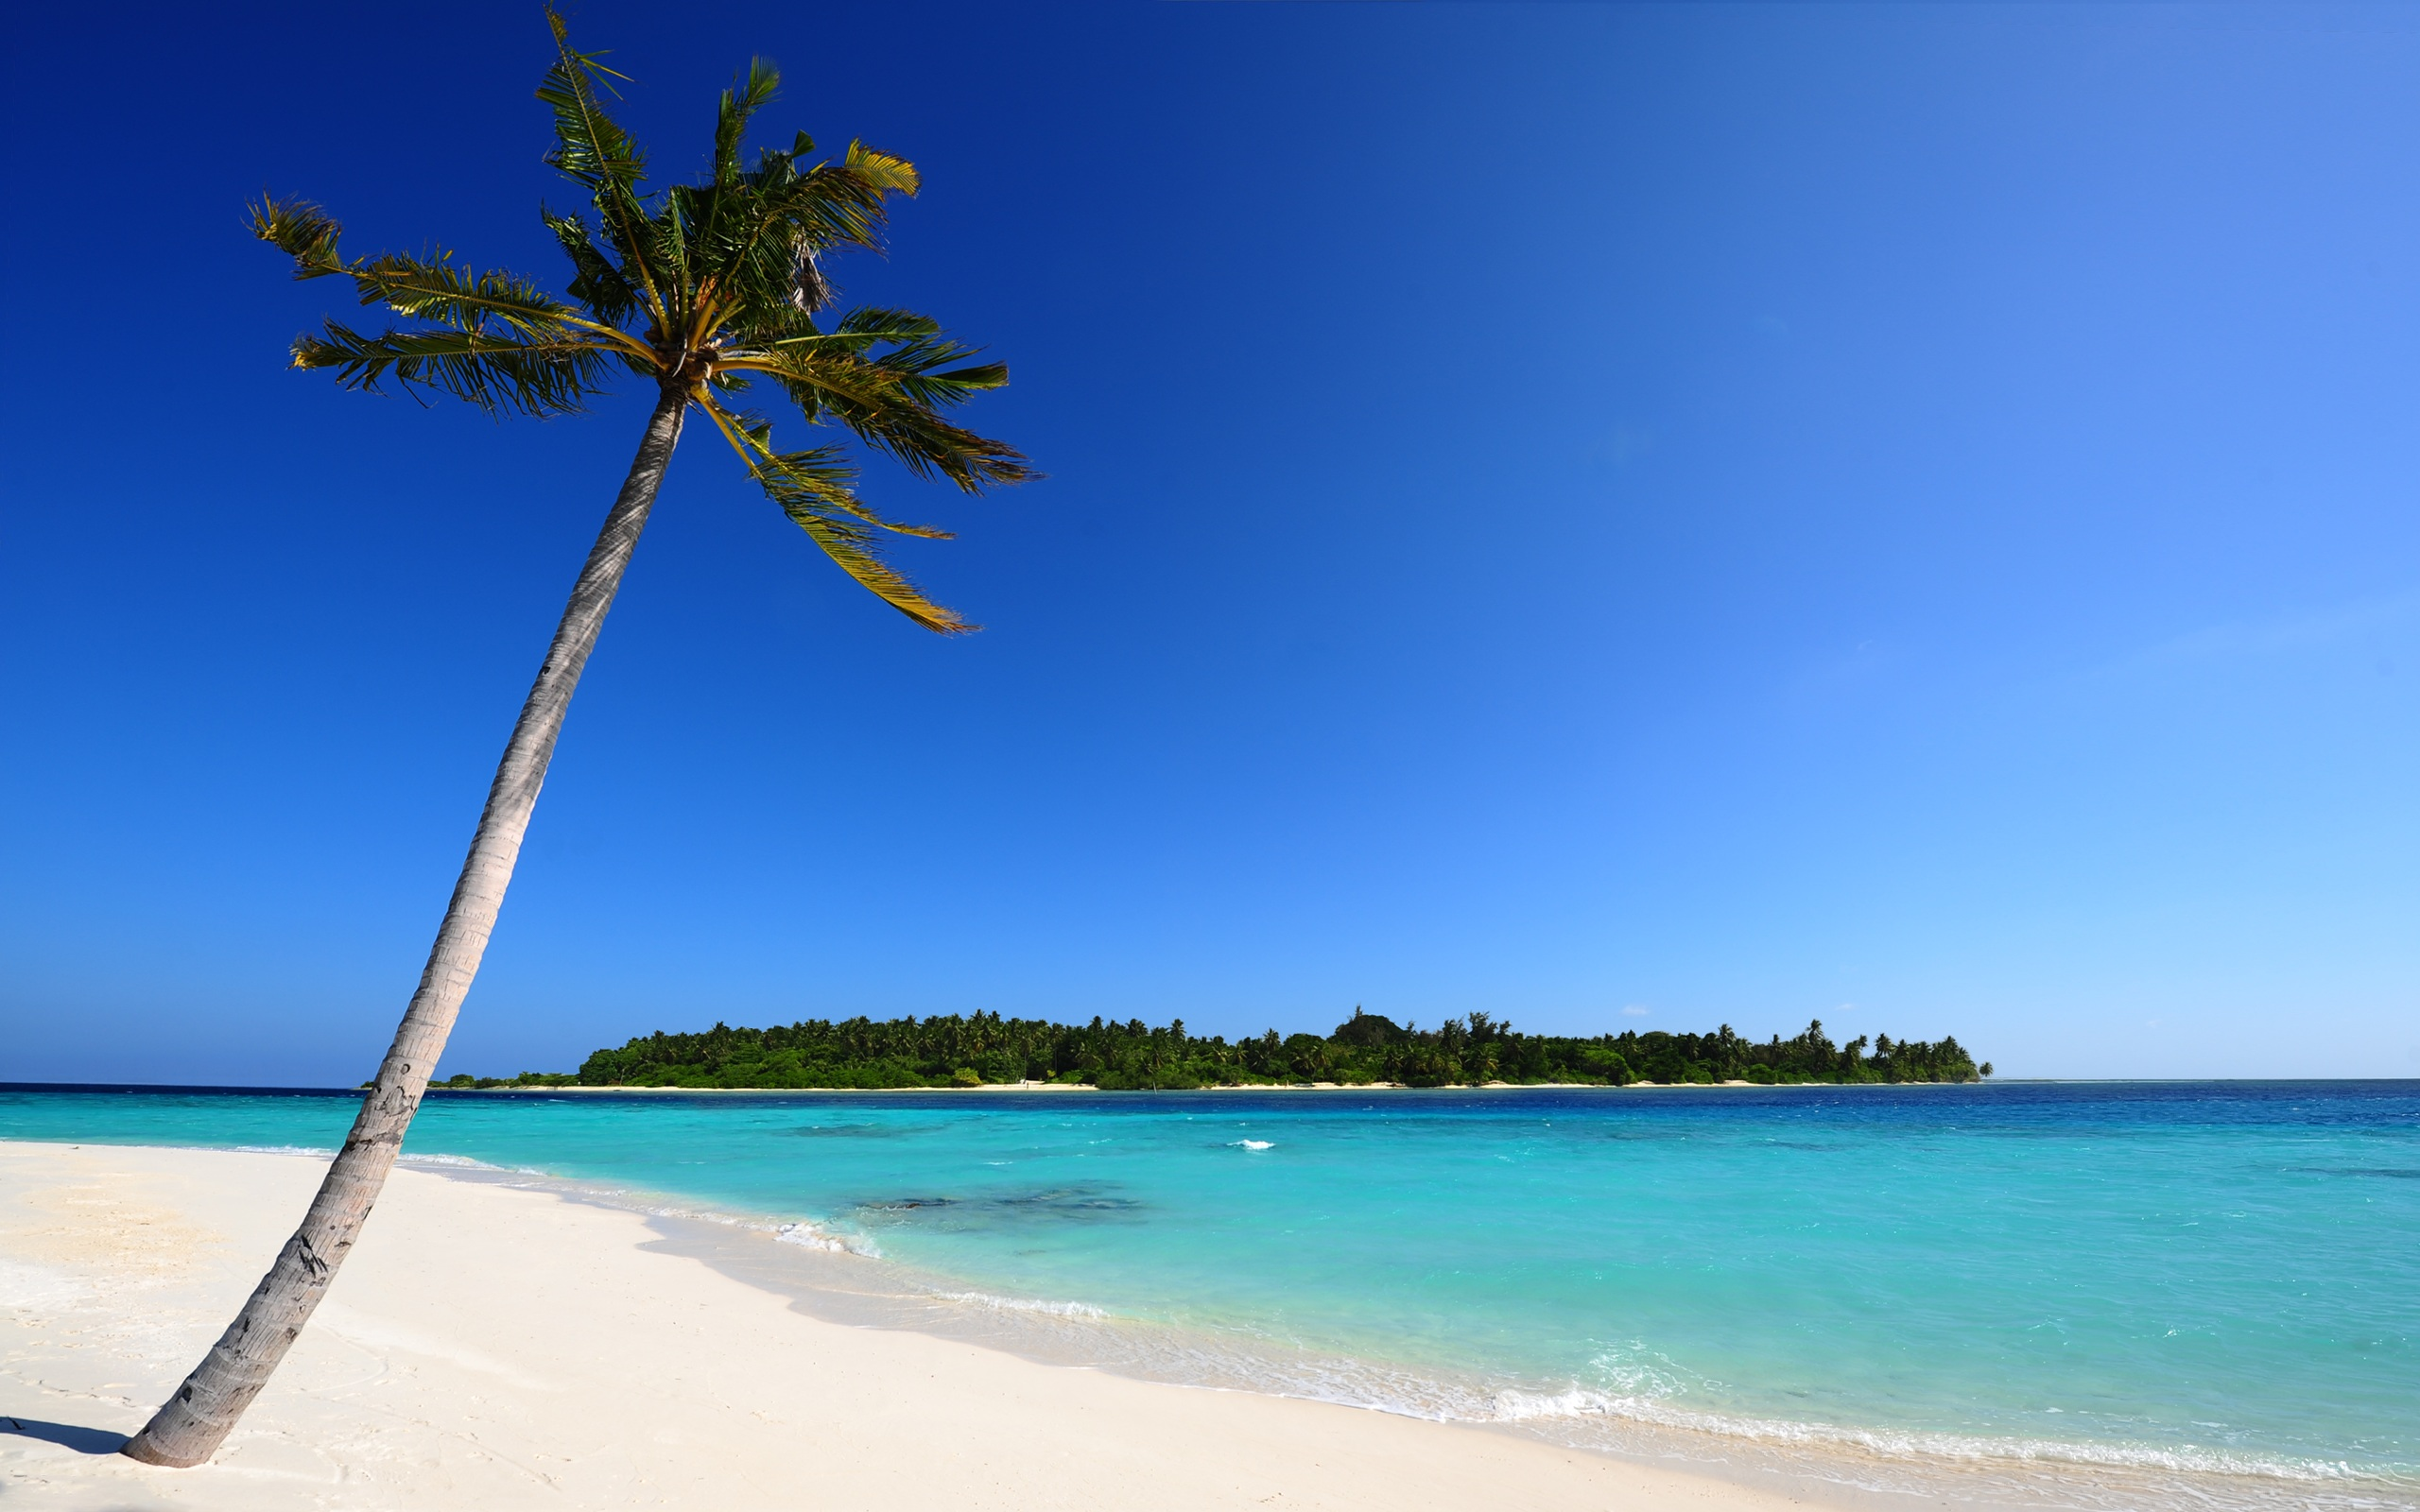 palm-tree-beach-island-blue-ocean-sand_095462.jpg